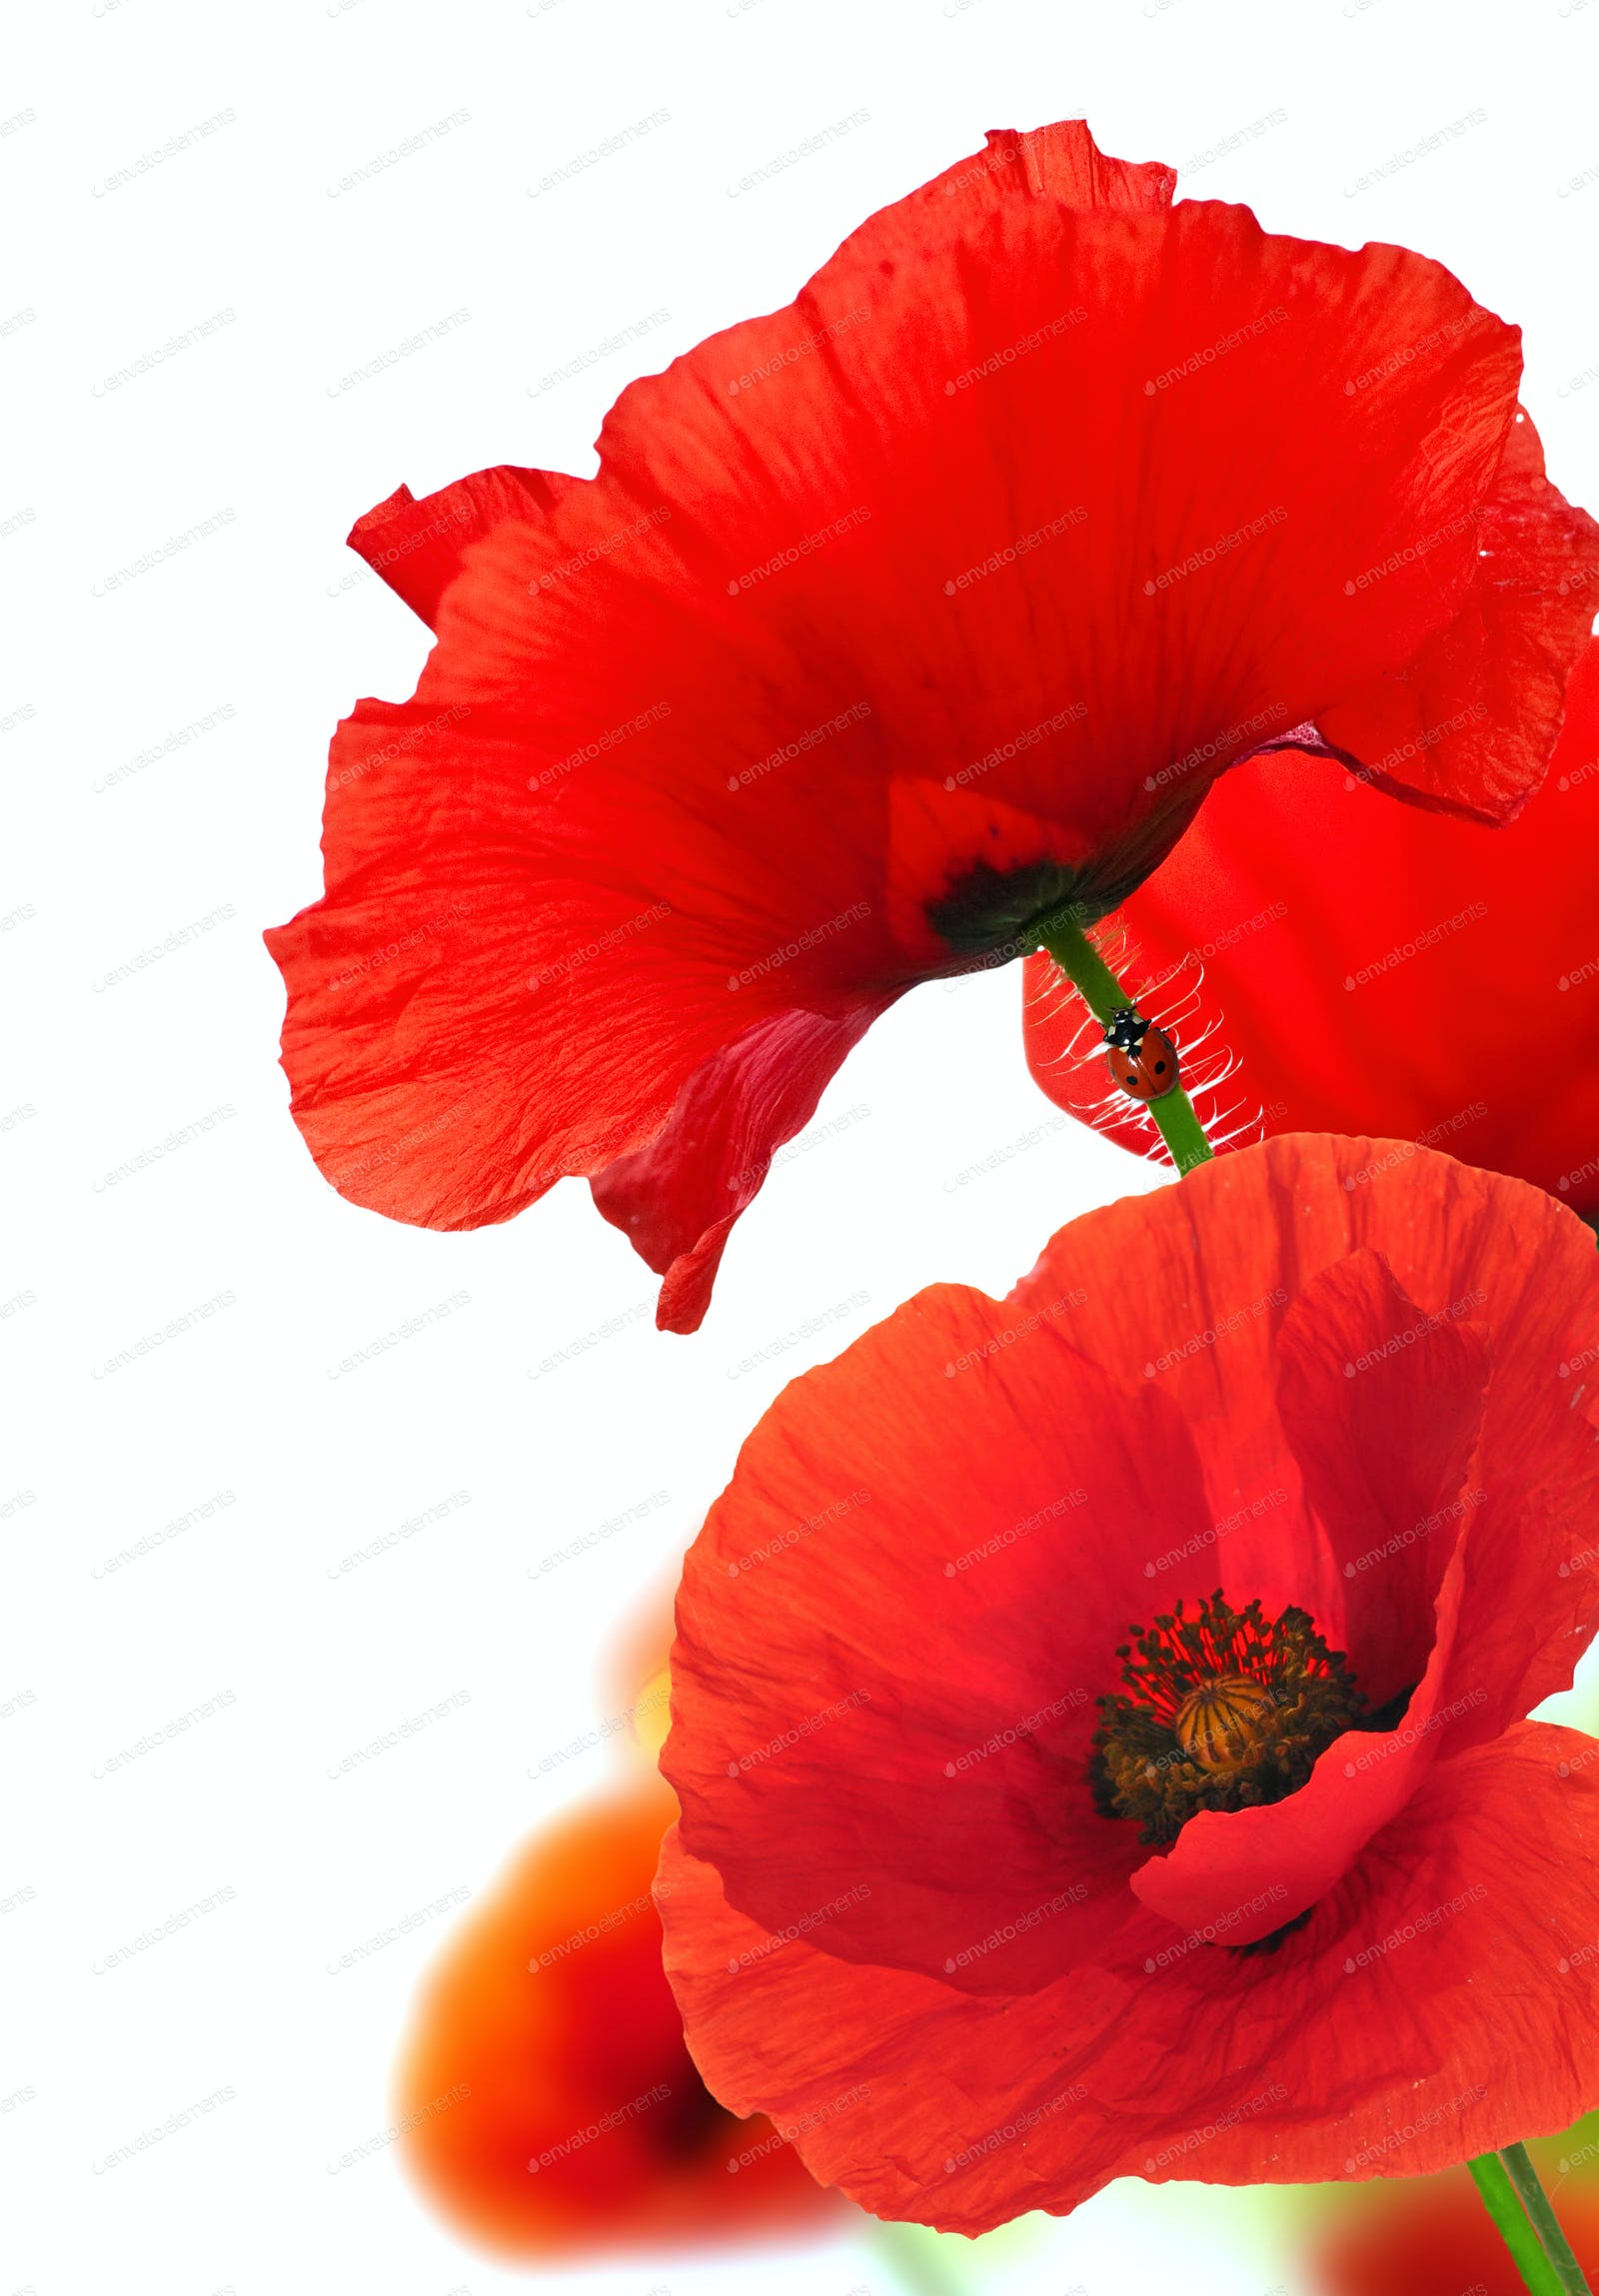 Red Poppy Flowers Over White Floral Background Photo By